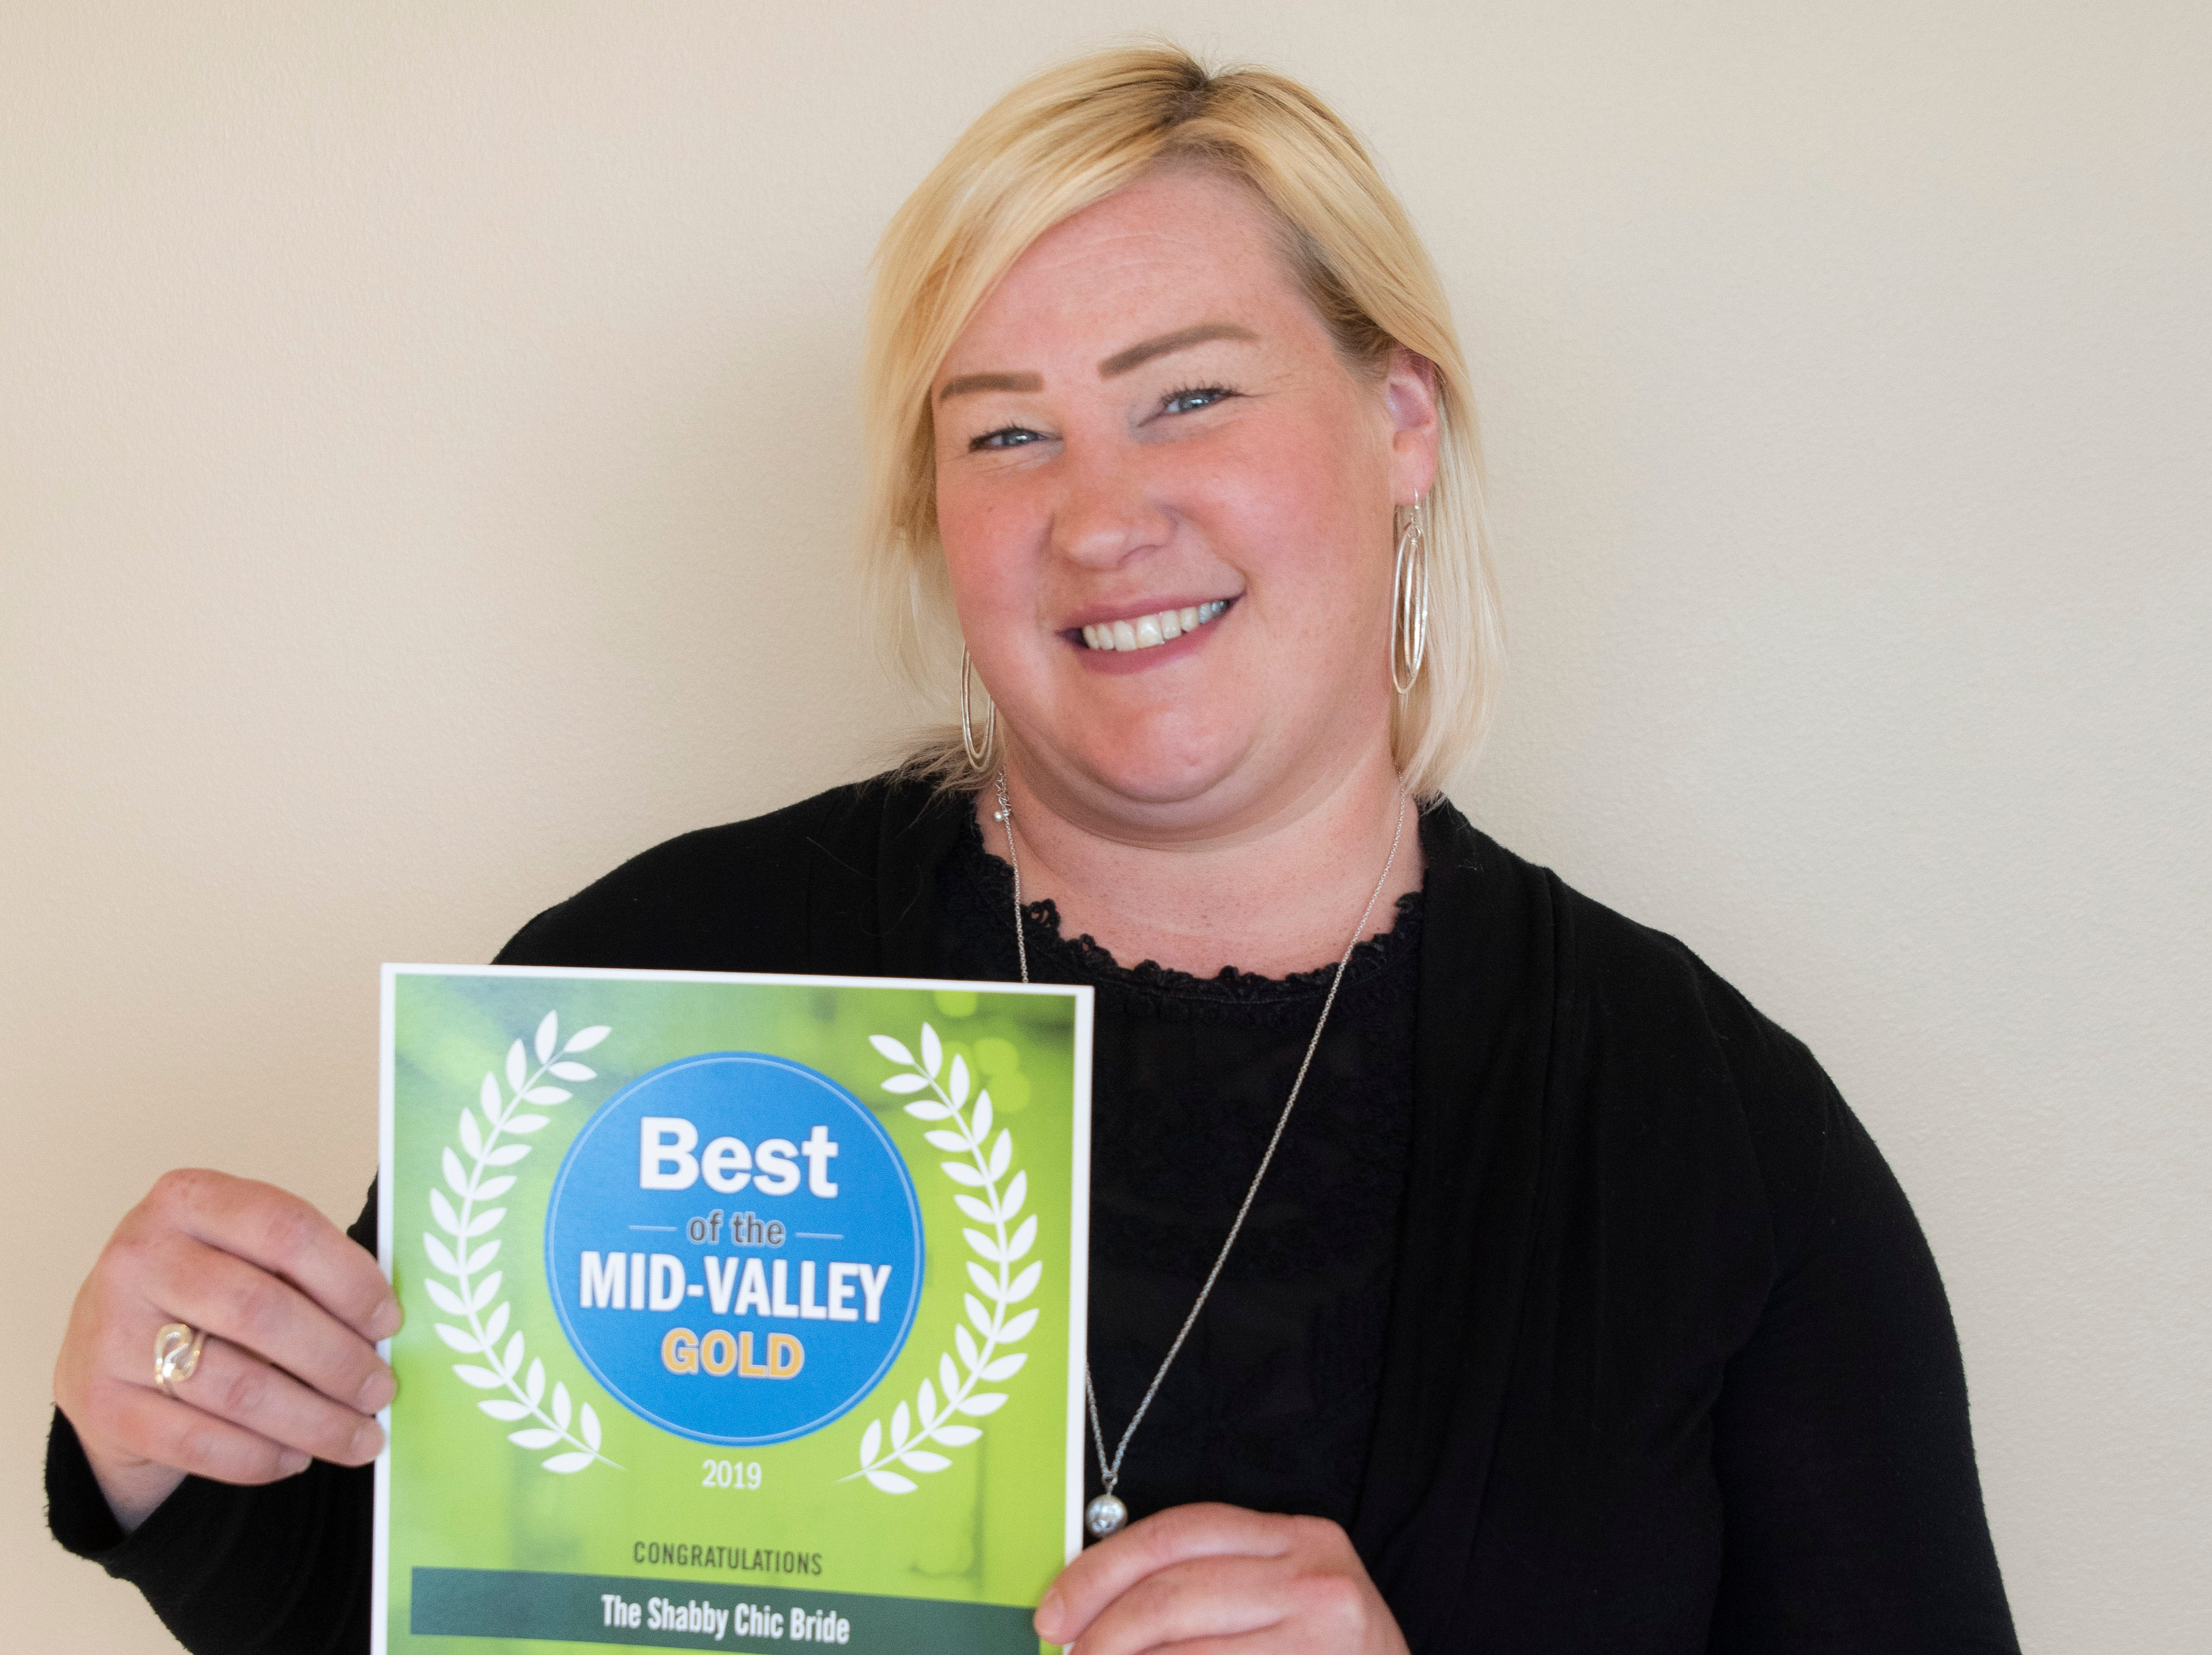 The Shabby Chic Bride won gold for Best Bridal Shop in the 2019 Best of the Mid-Valley.